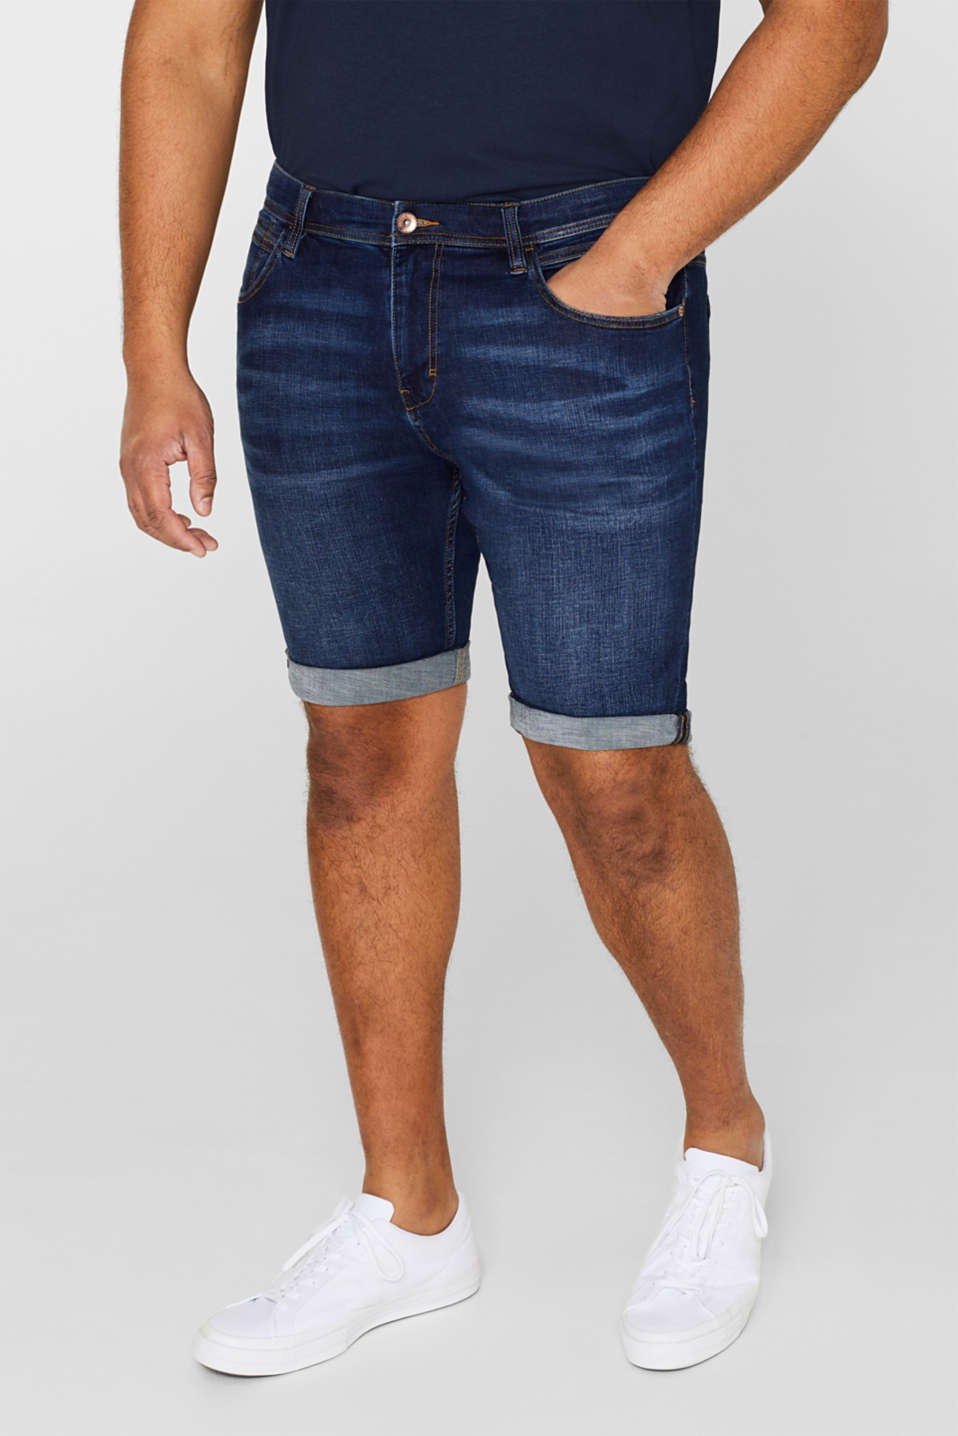 Super stretchy denim shorts with a washed-out finish